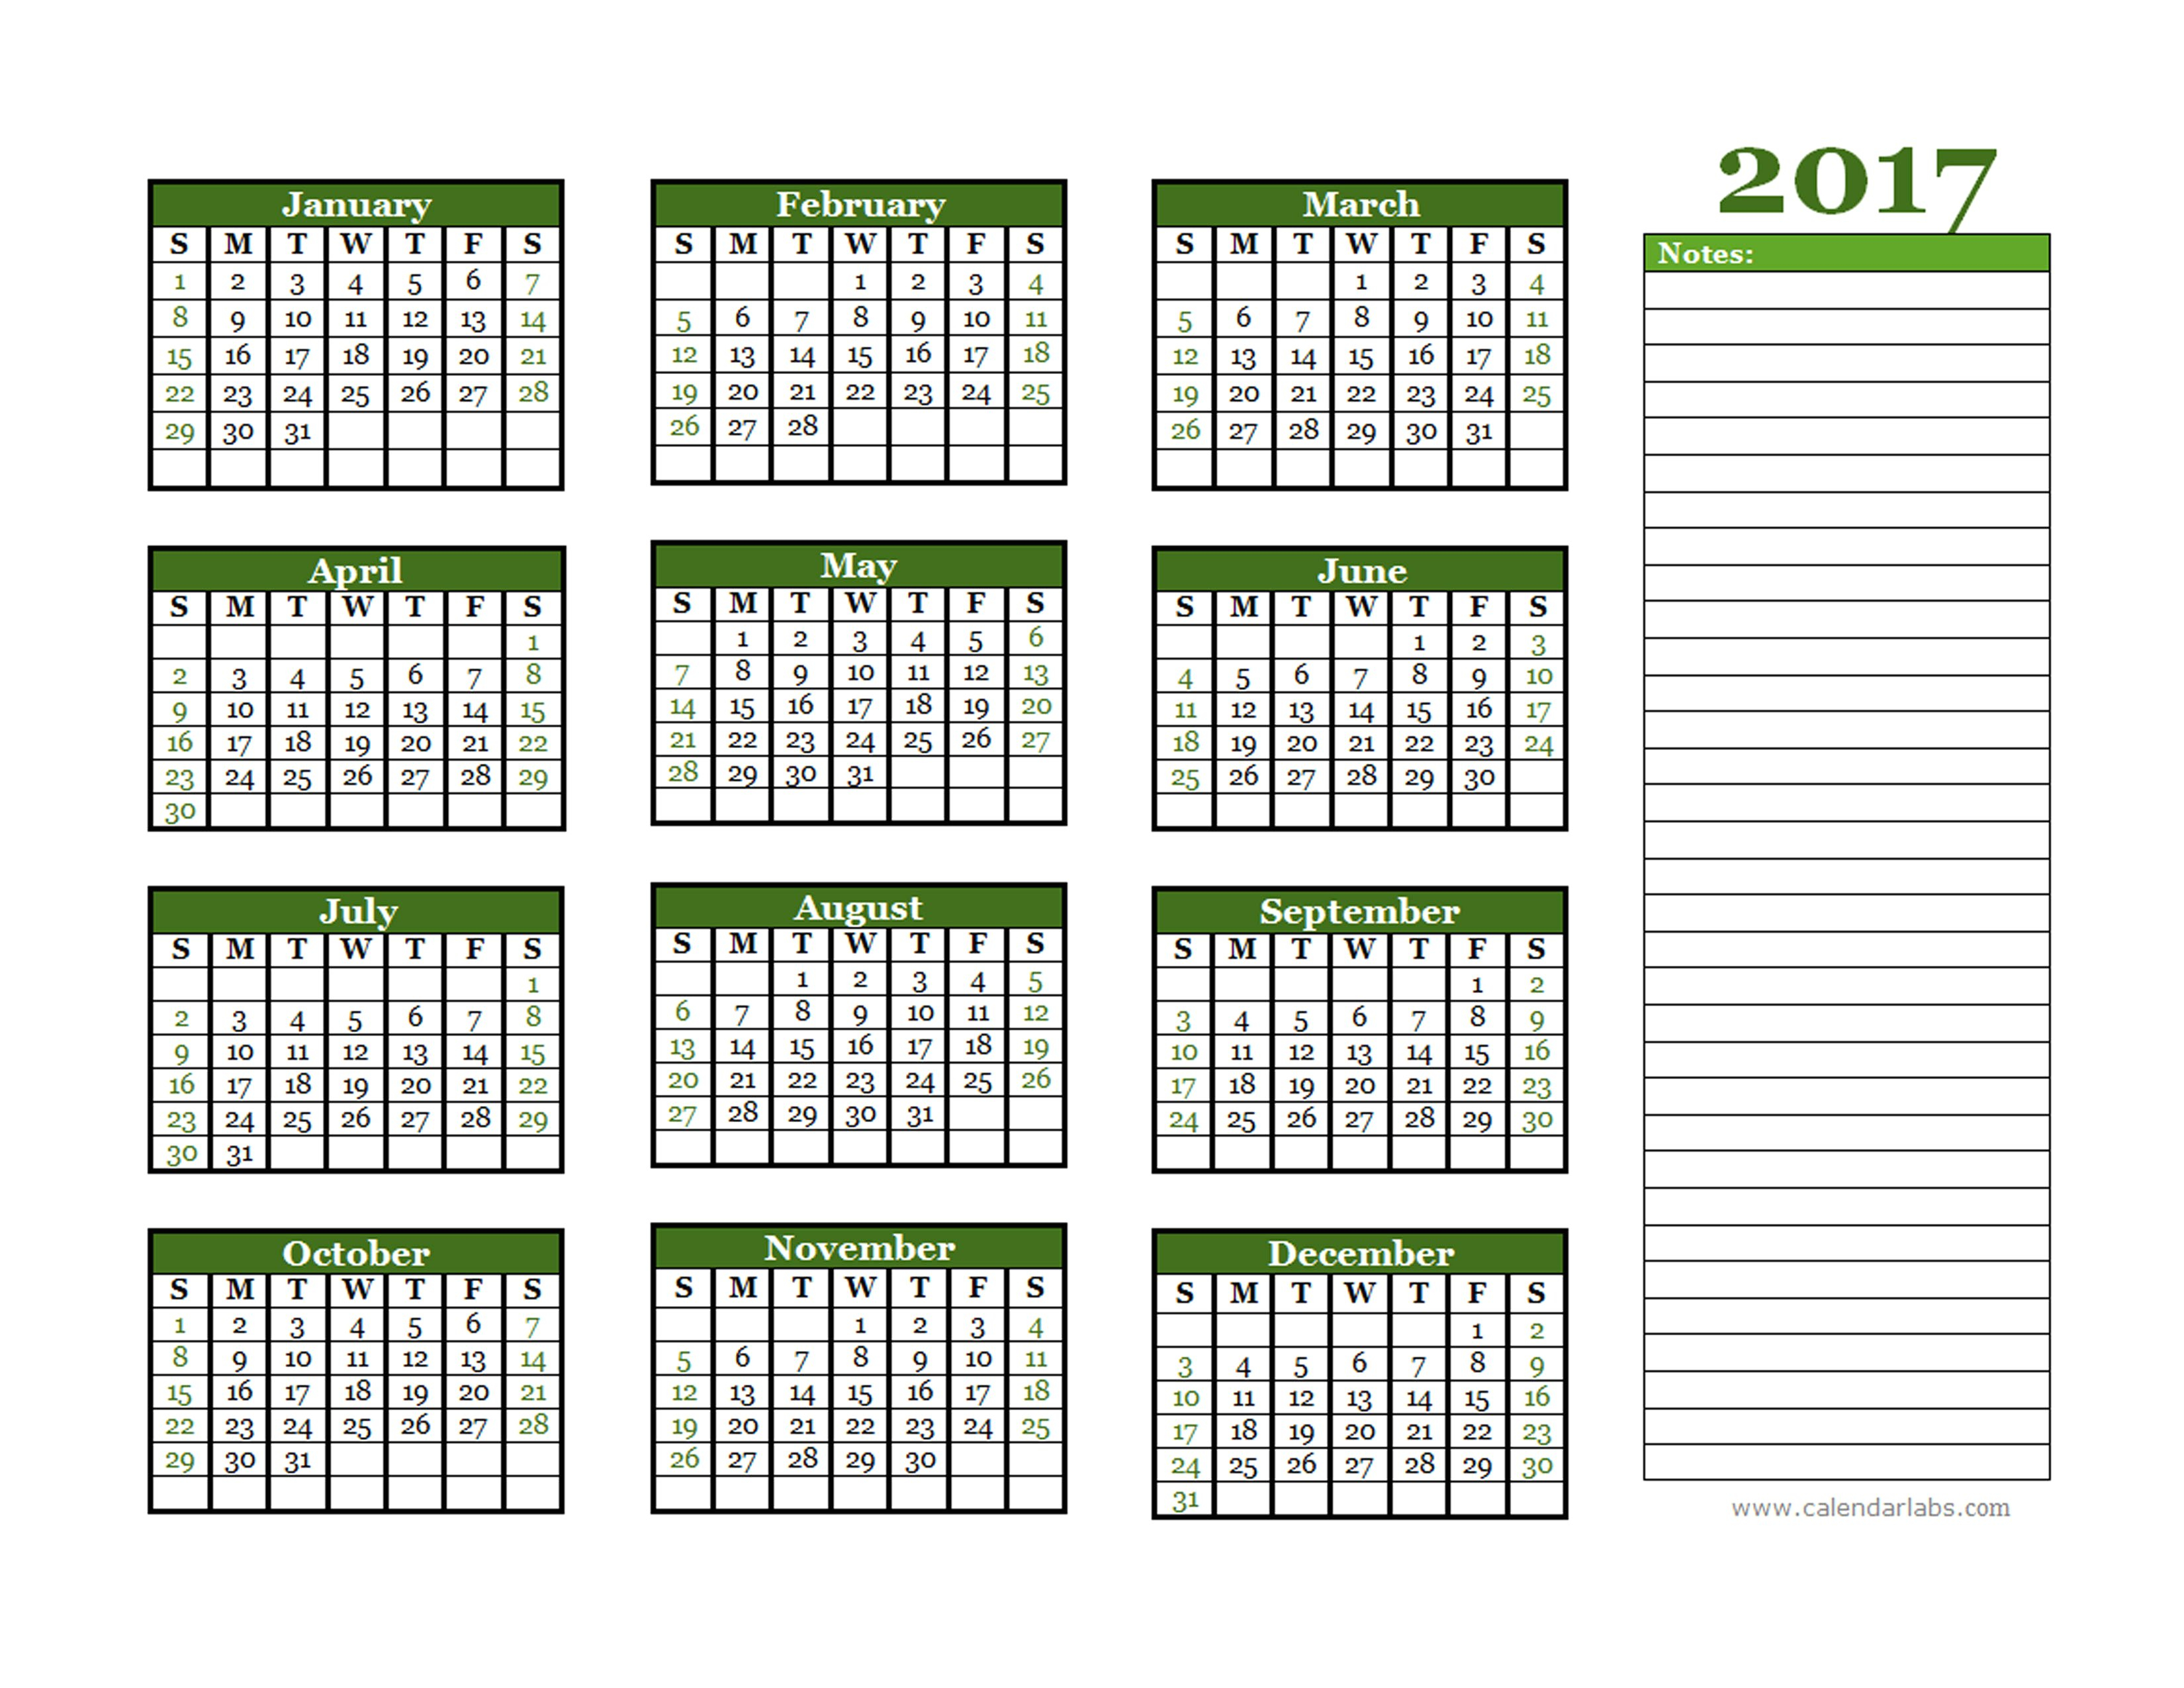 Calendar Labs 2019 2017 Yearly Calendar With Blank Notes Free 2019 Calendar 4 4 5